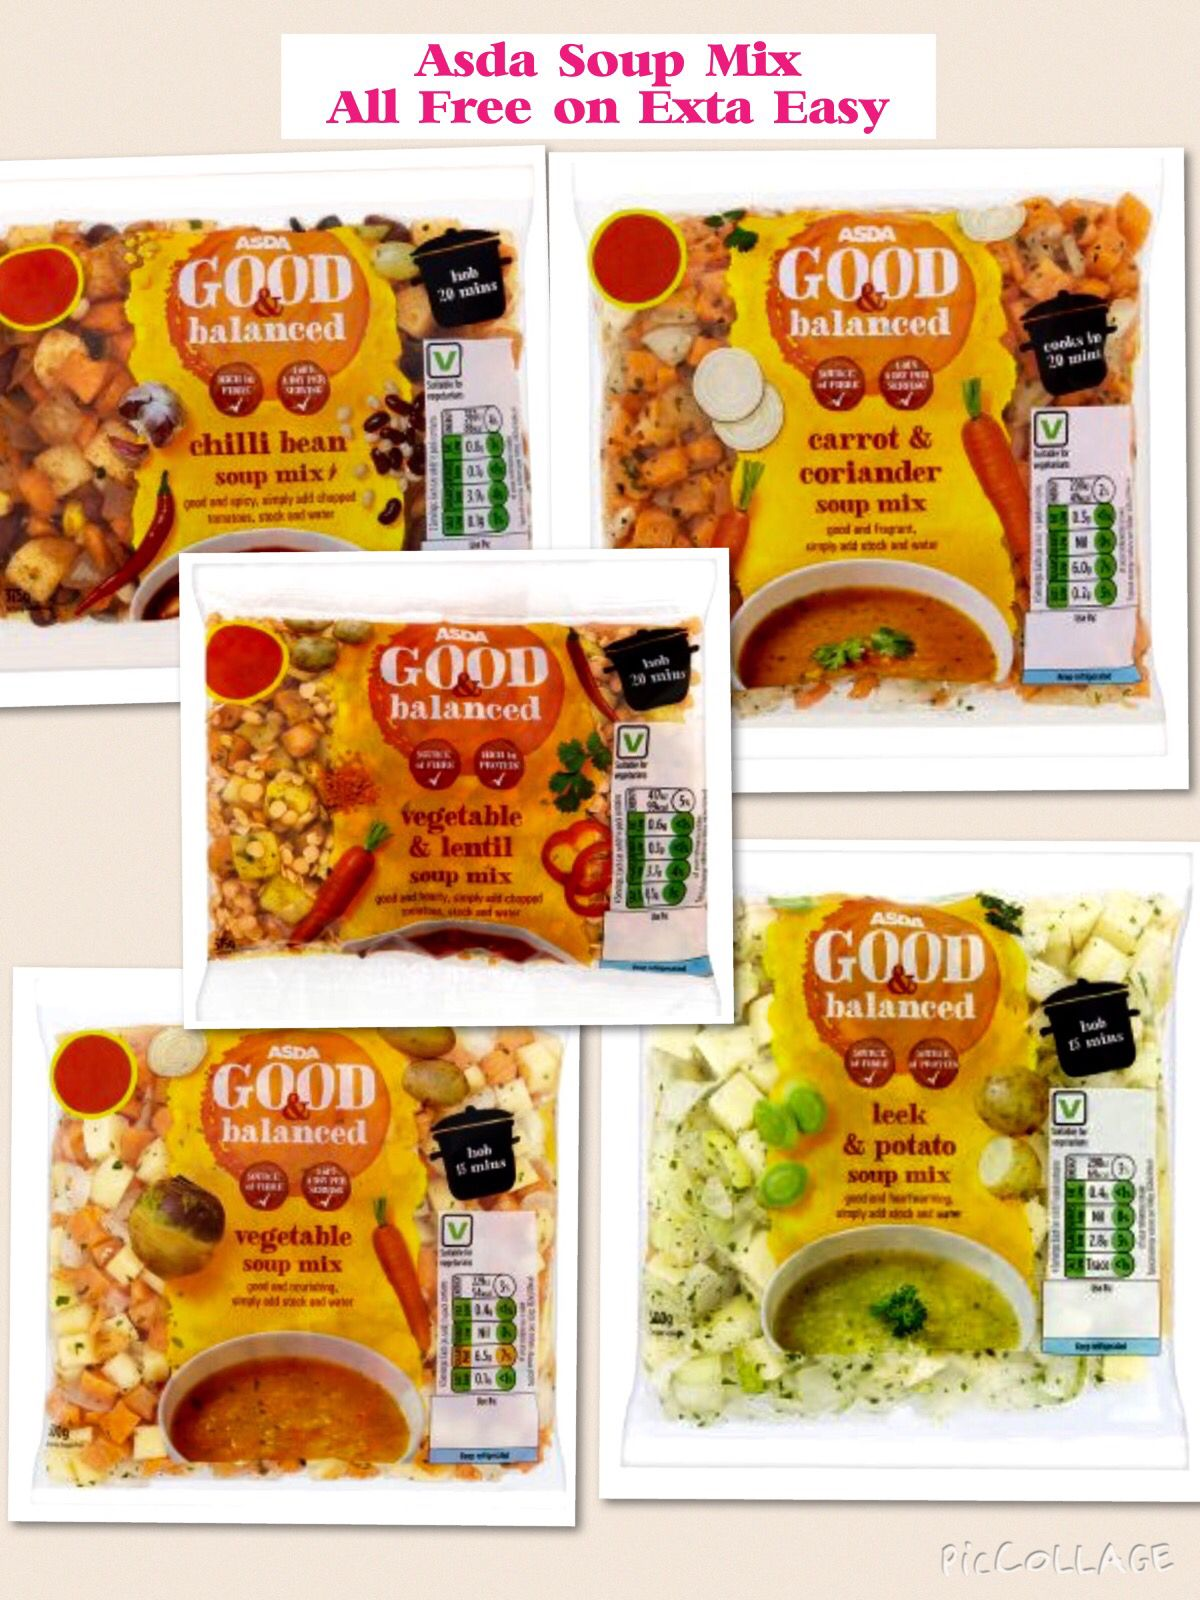 Soup Mix Packs From Asda All Syn Free On Extra Easy For